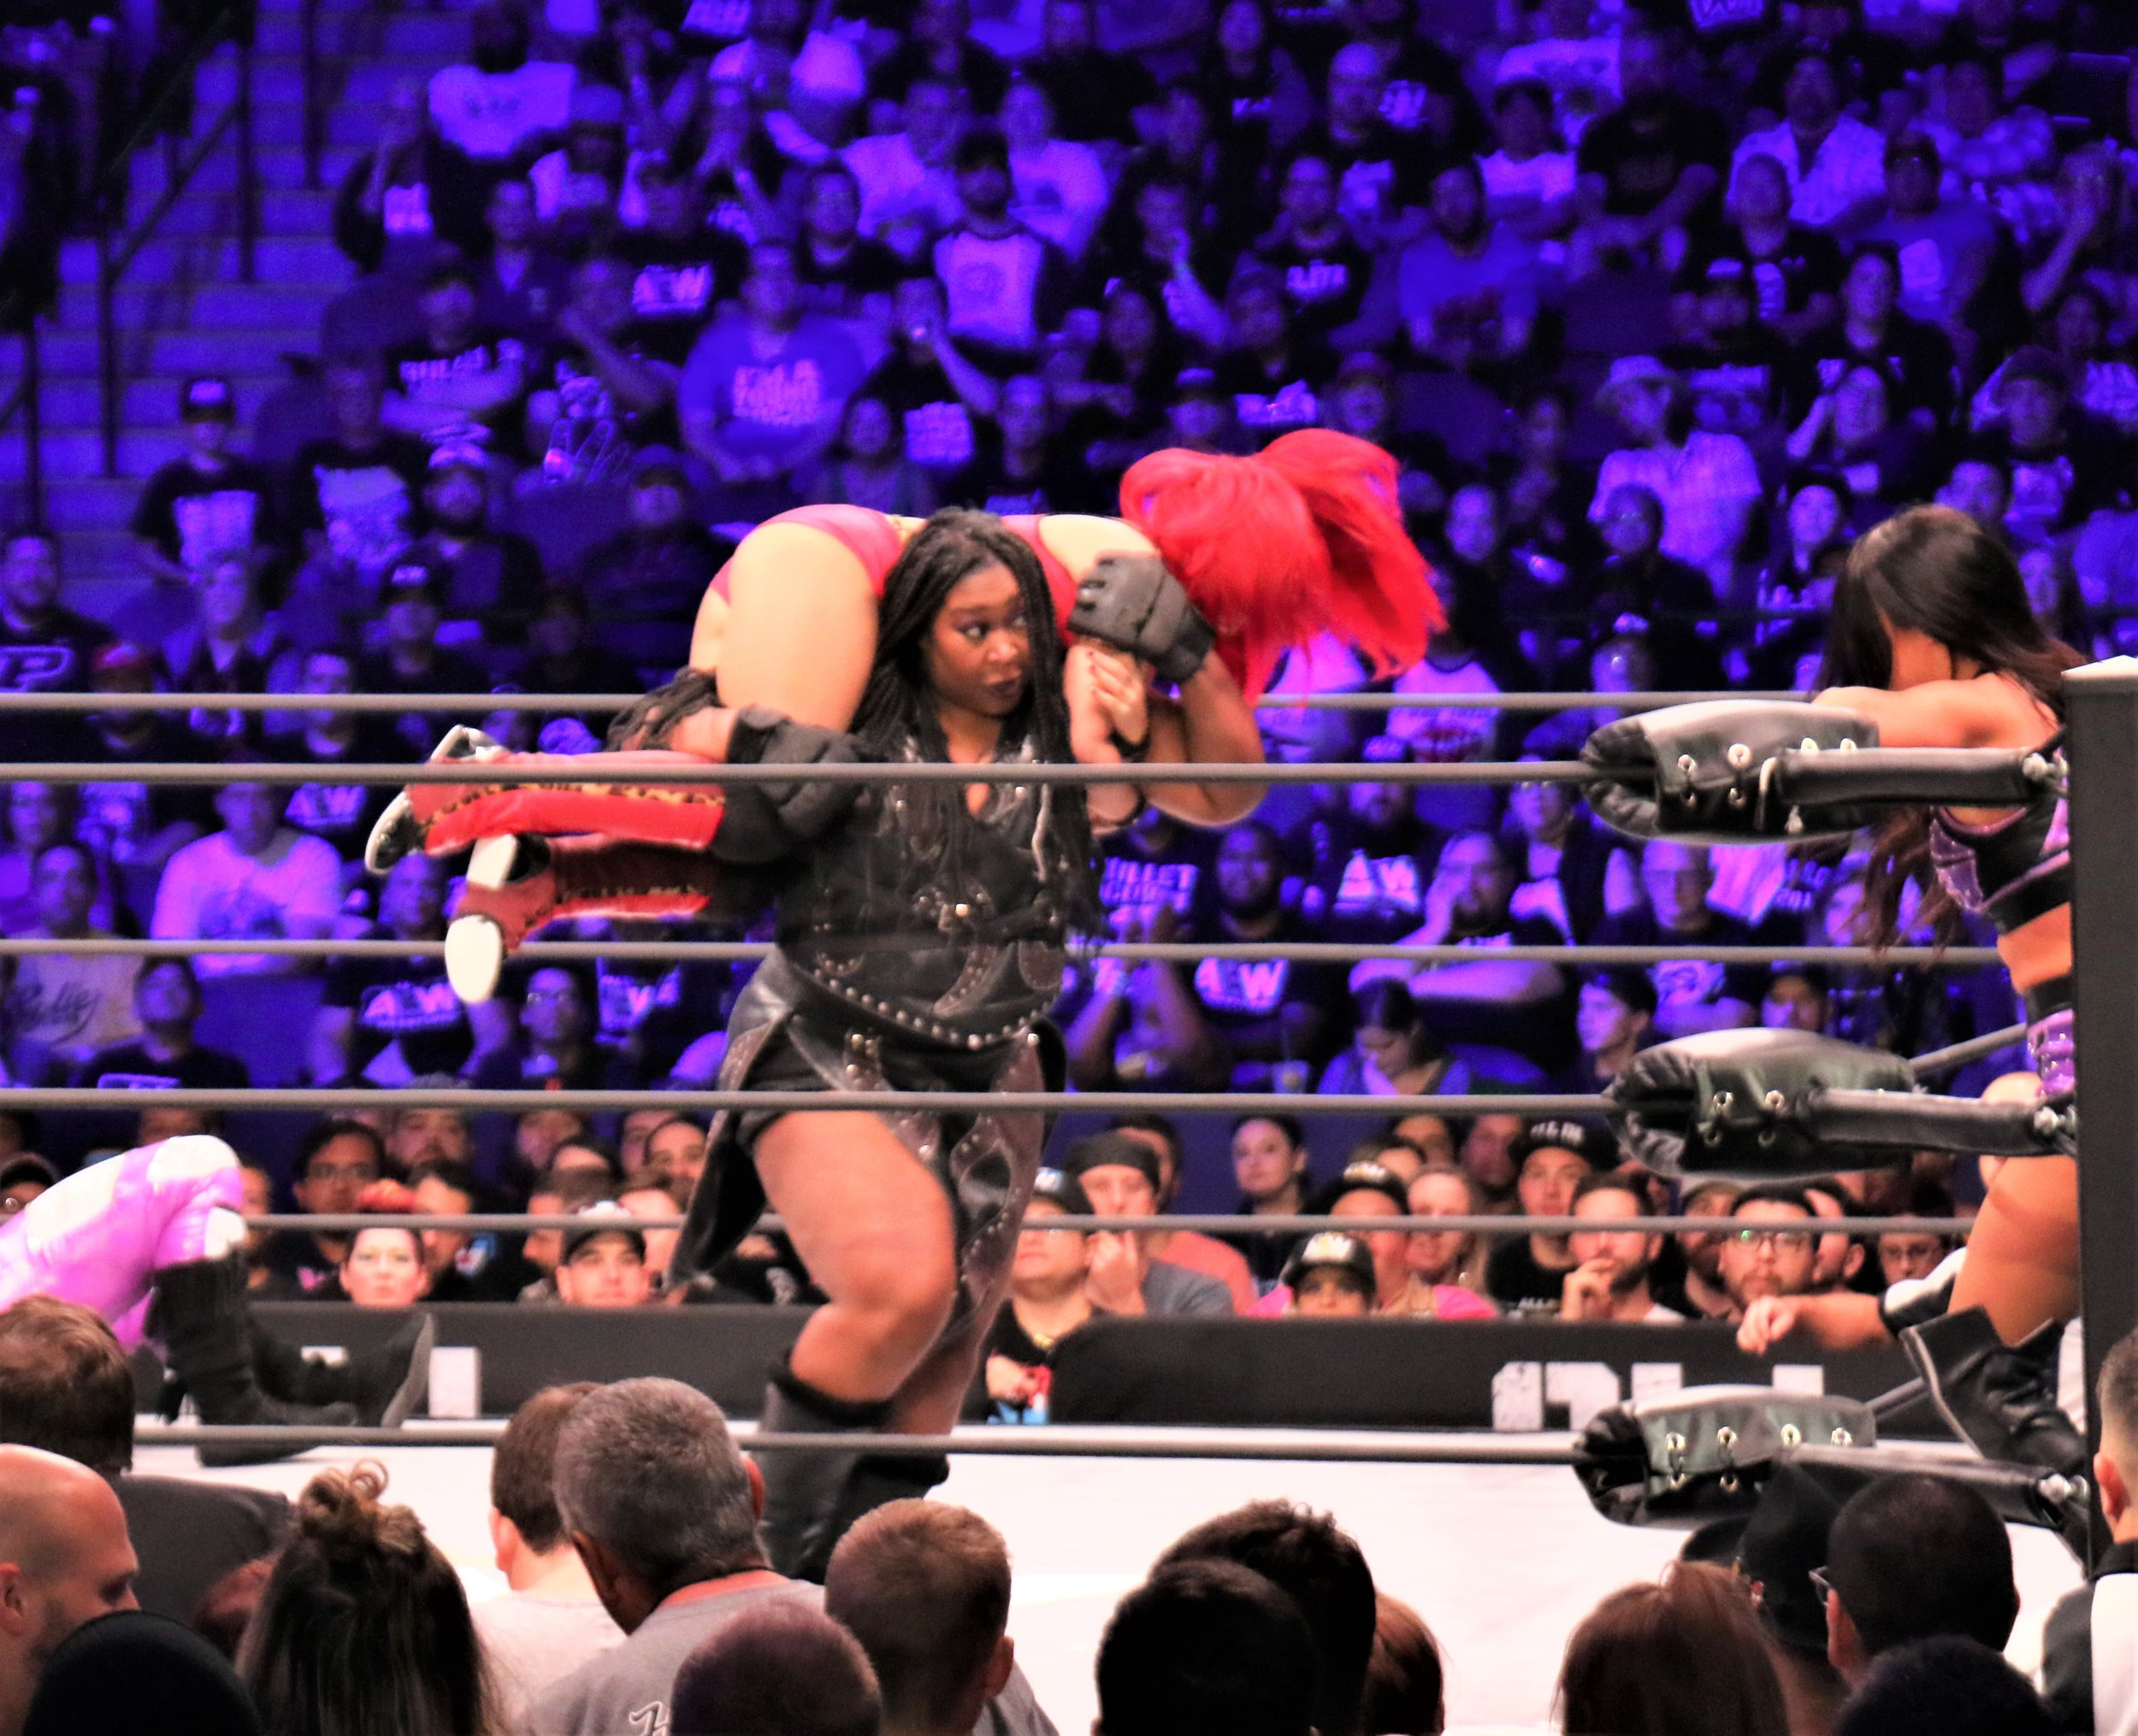 Awesome Kong hoists Ivelisse into the air during the Casino Battle Royale.